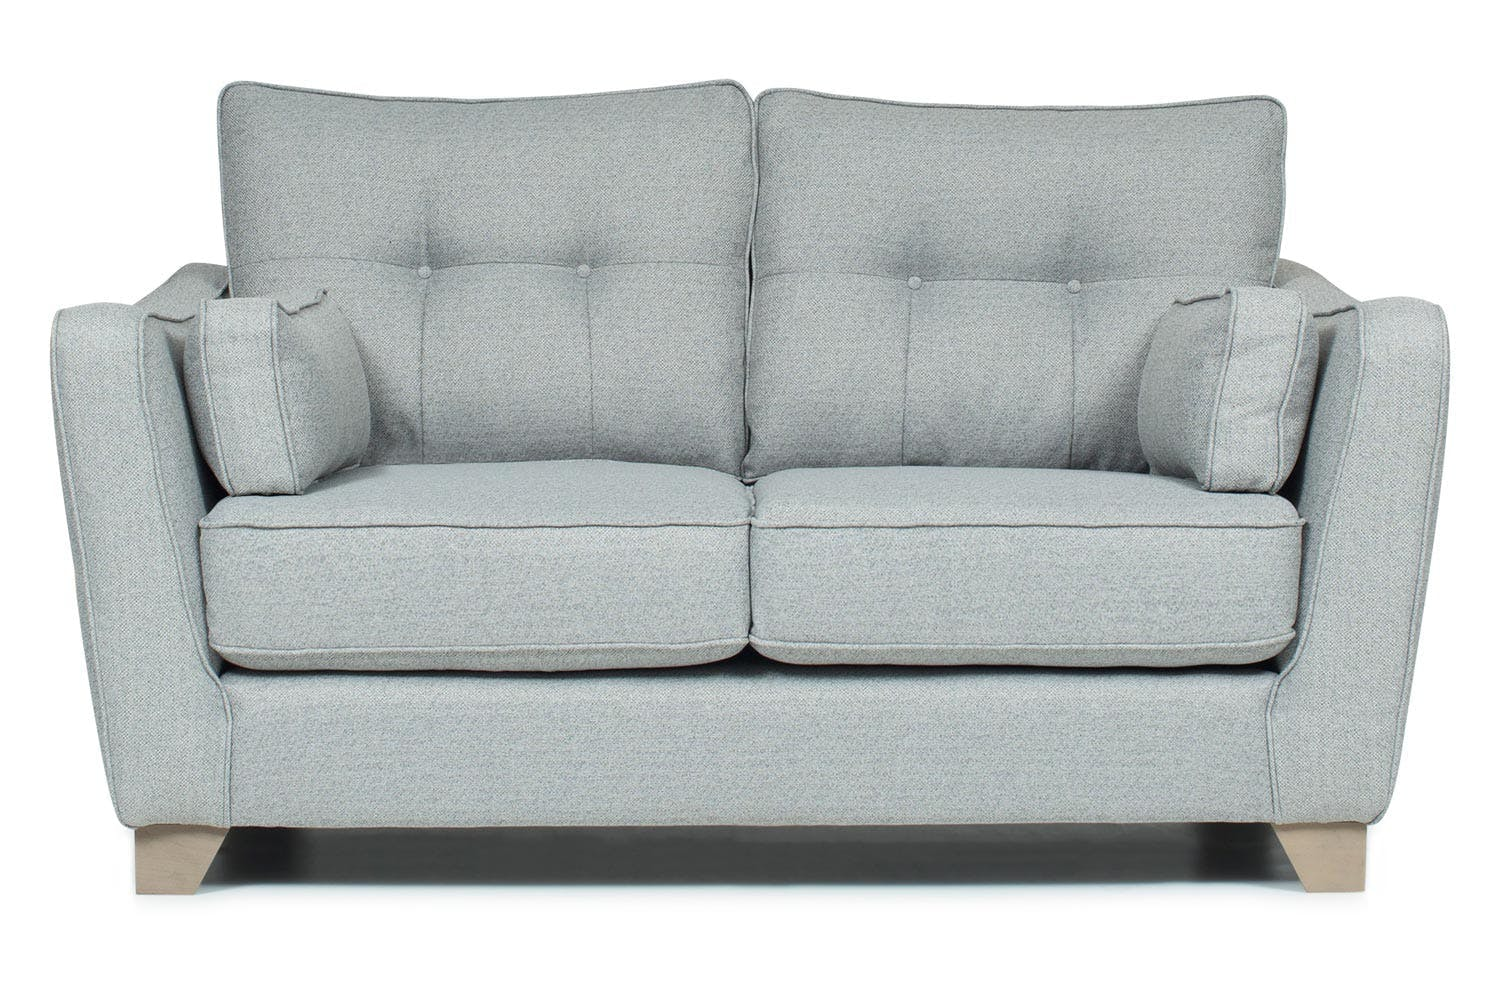 396806081f26 Roxy 2 Seater Sofa | Ireland